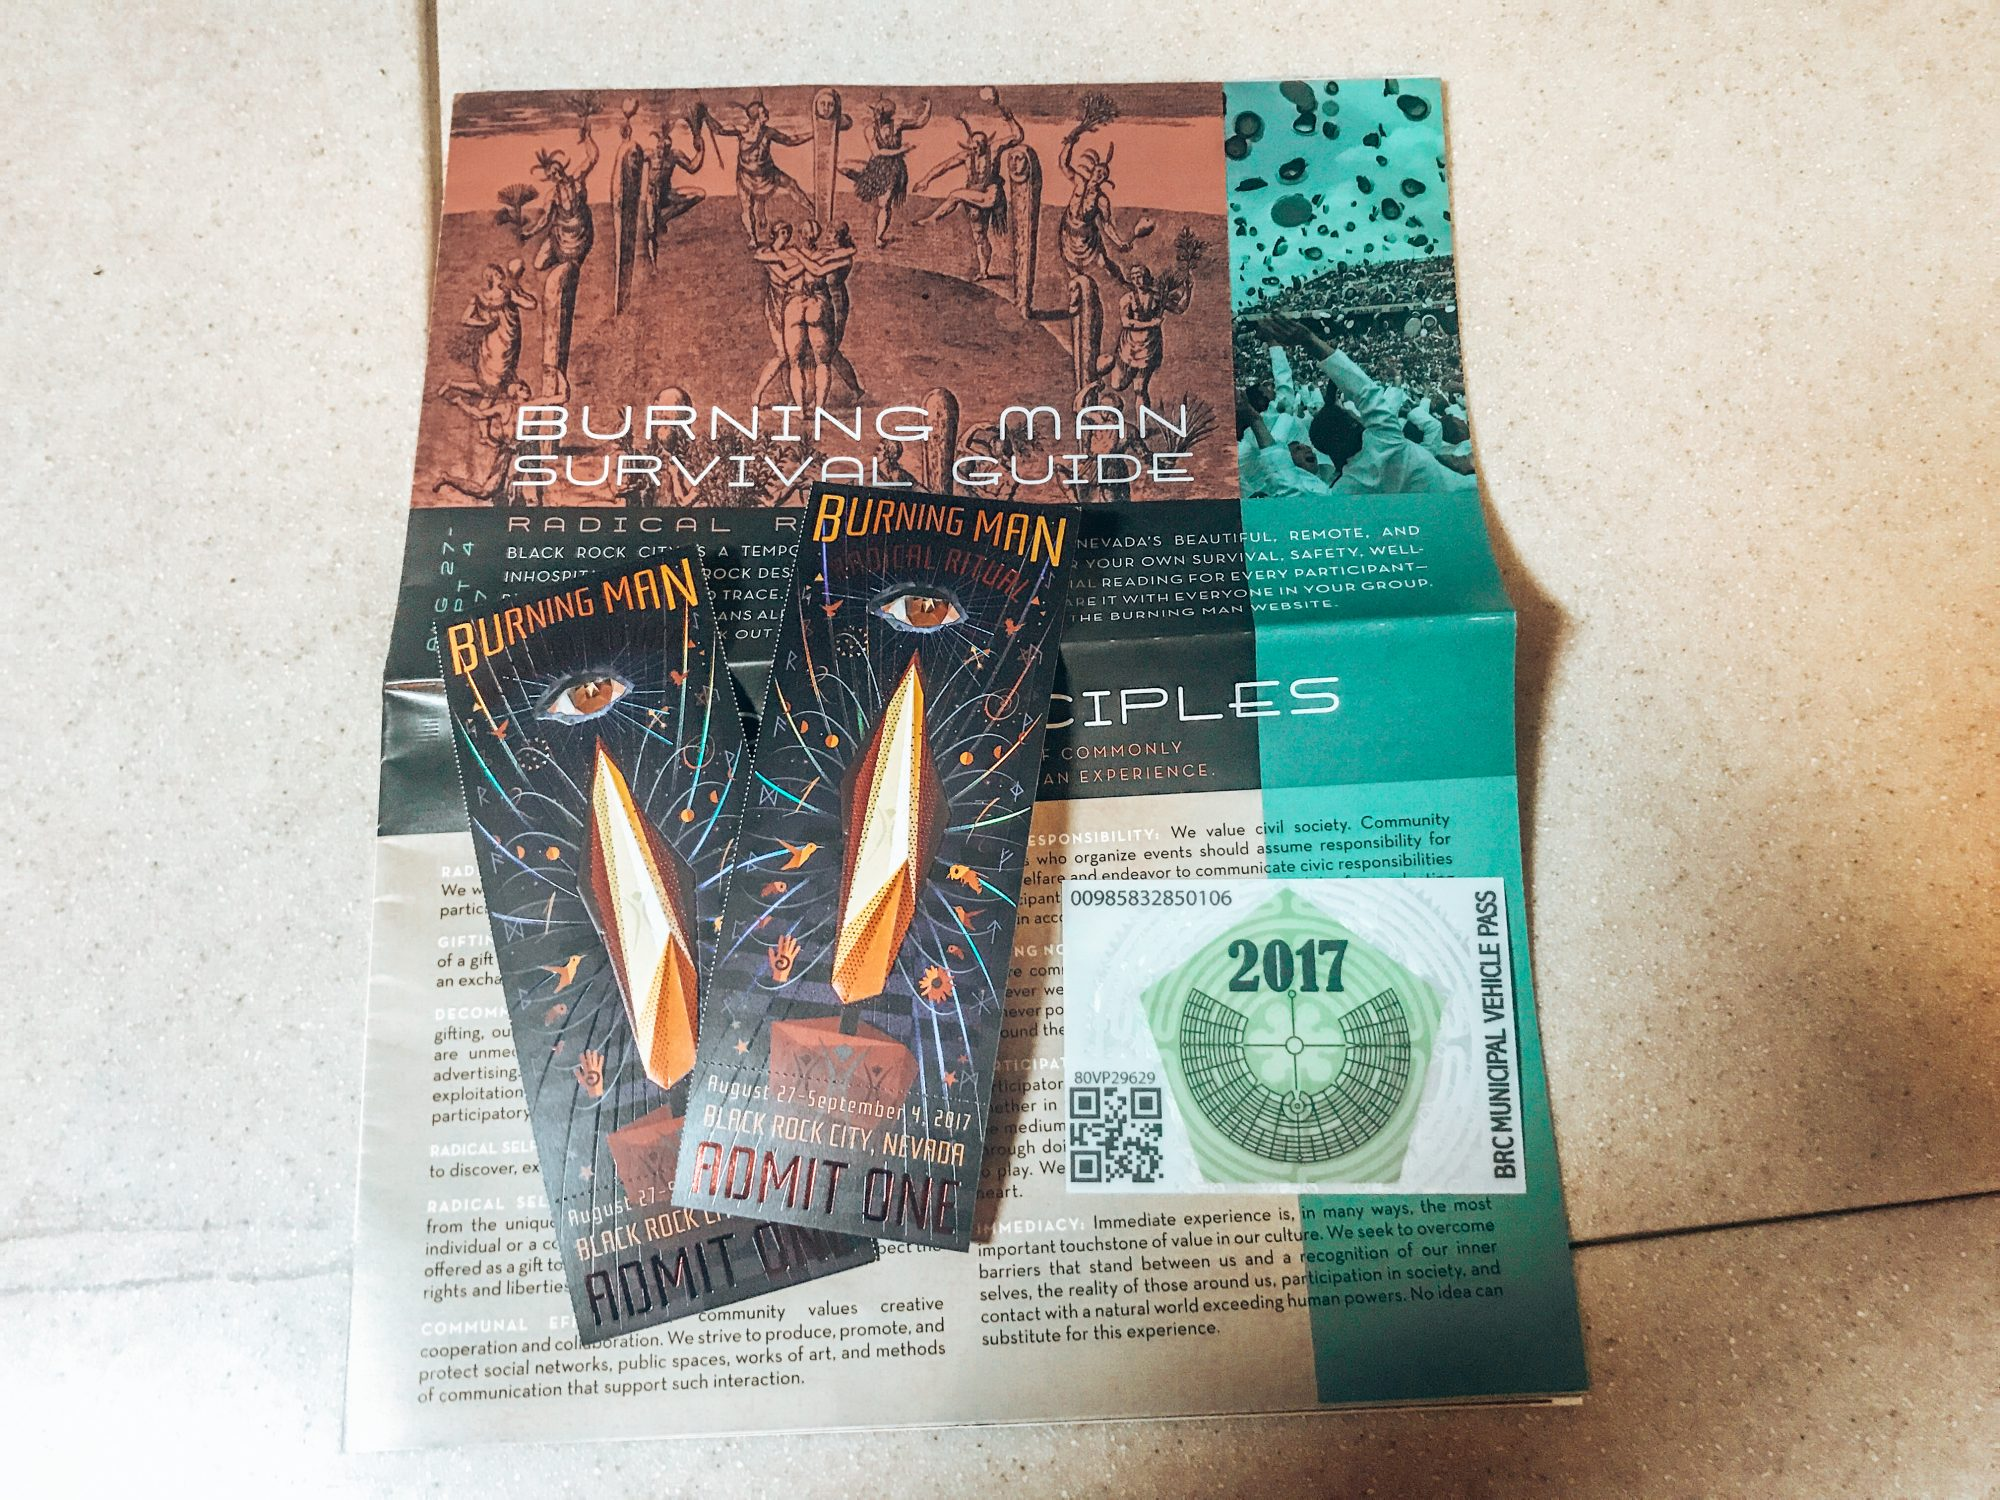 Burning Man 2017 Tickets